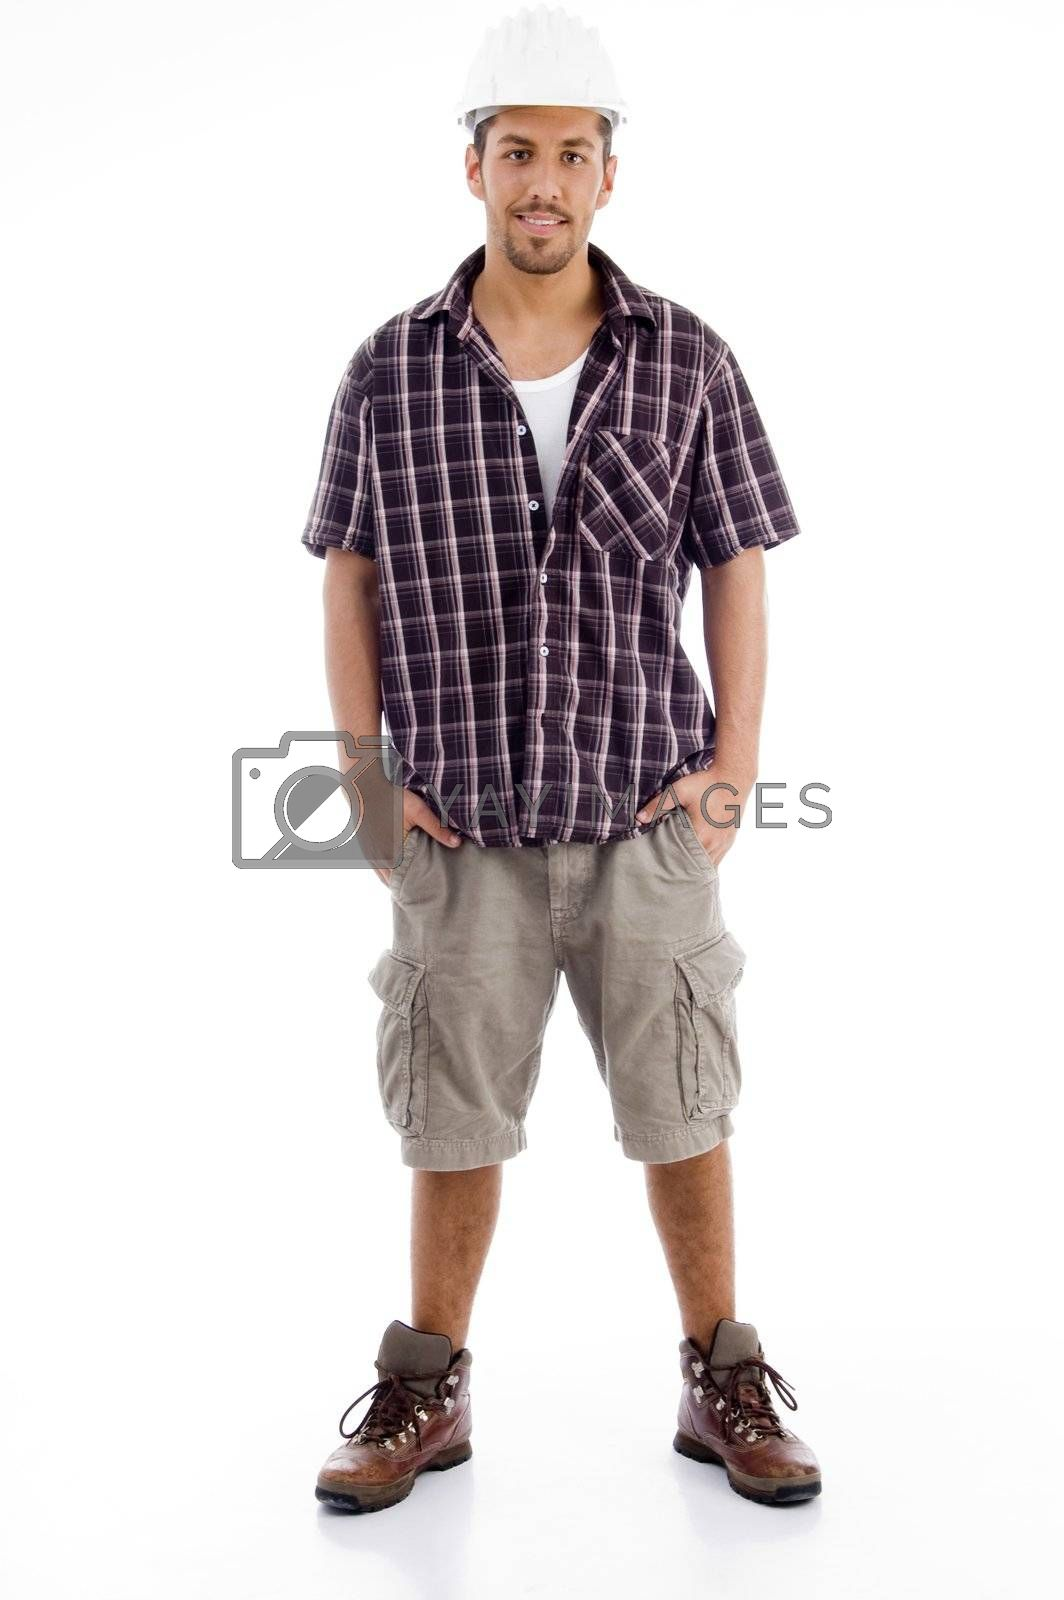 Royalty free image of casual male in standing pose by imagerymajestic